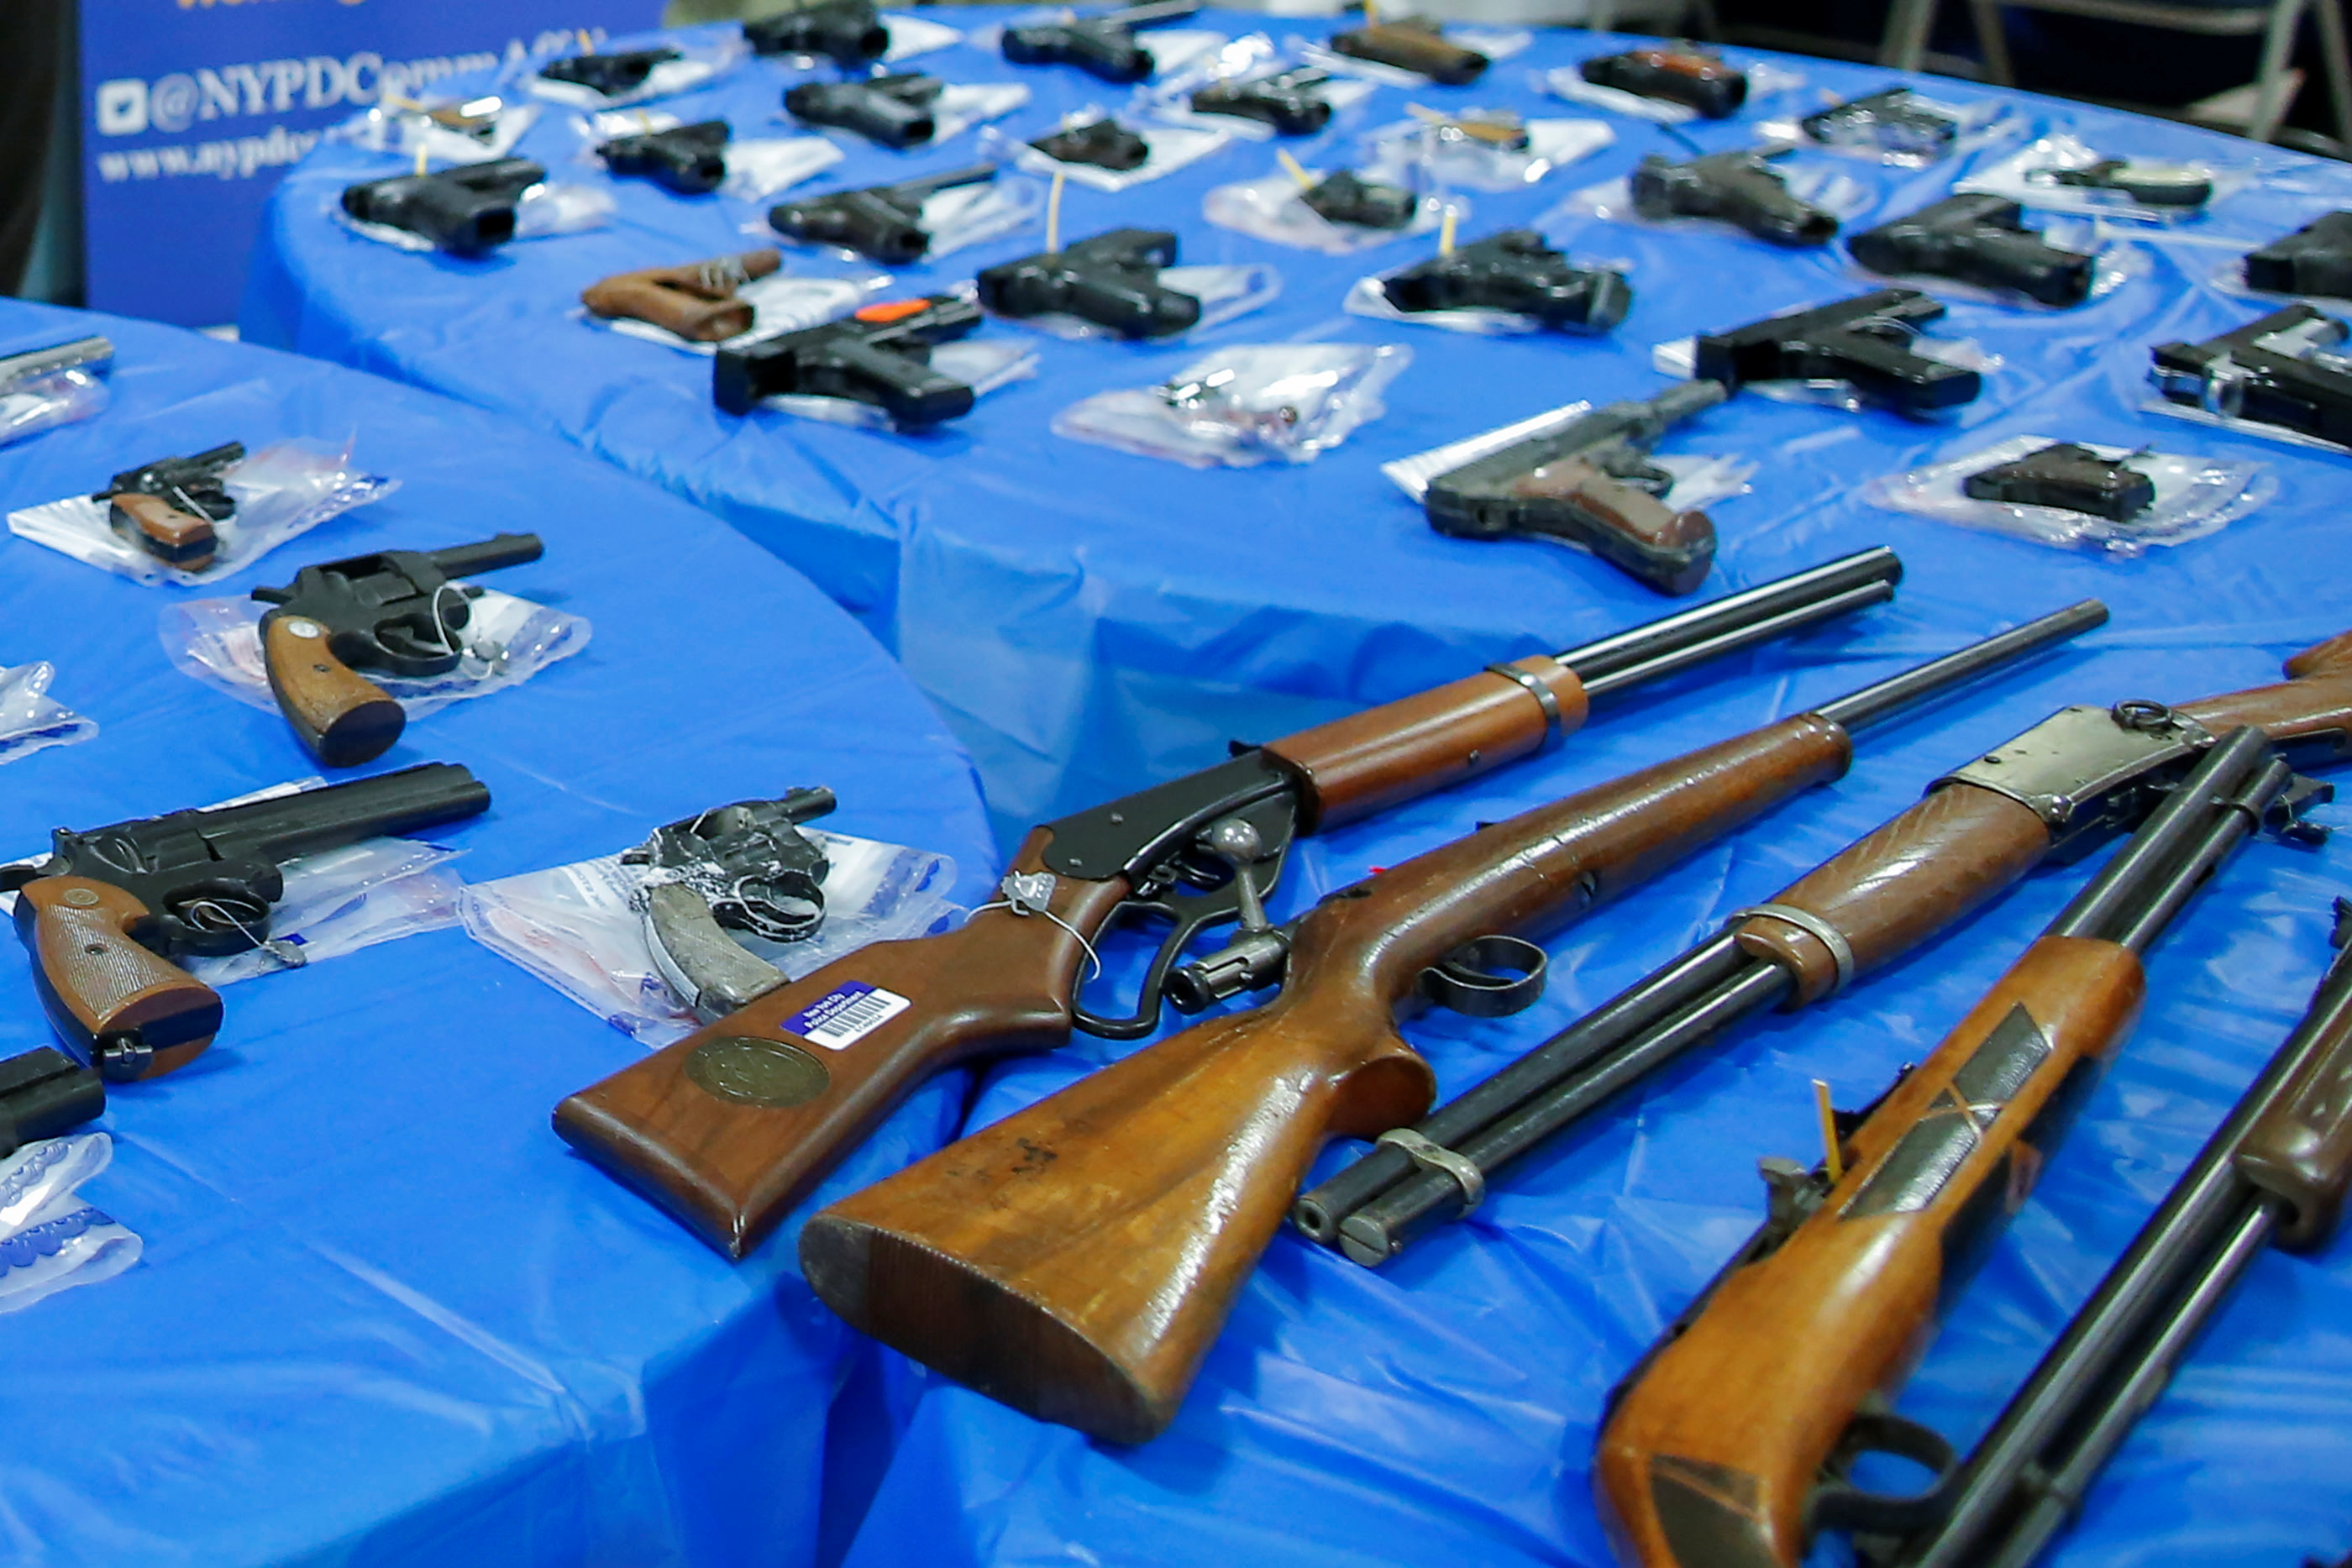 Guns are displayed after a gun buyback event organized by the New York City Police Department (NYPD), in the Queens borough of New York City, U.S., June 12, 2021. REUTERS/Eduardo Munoz